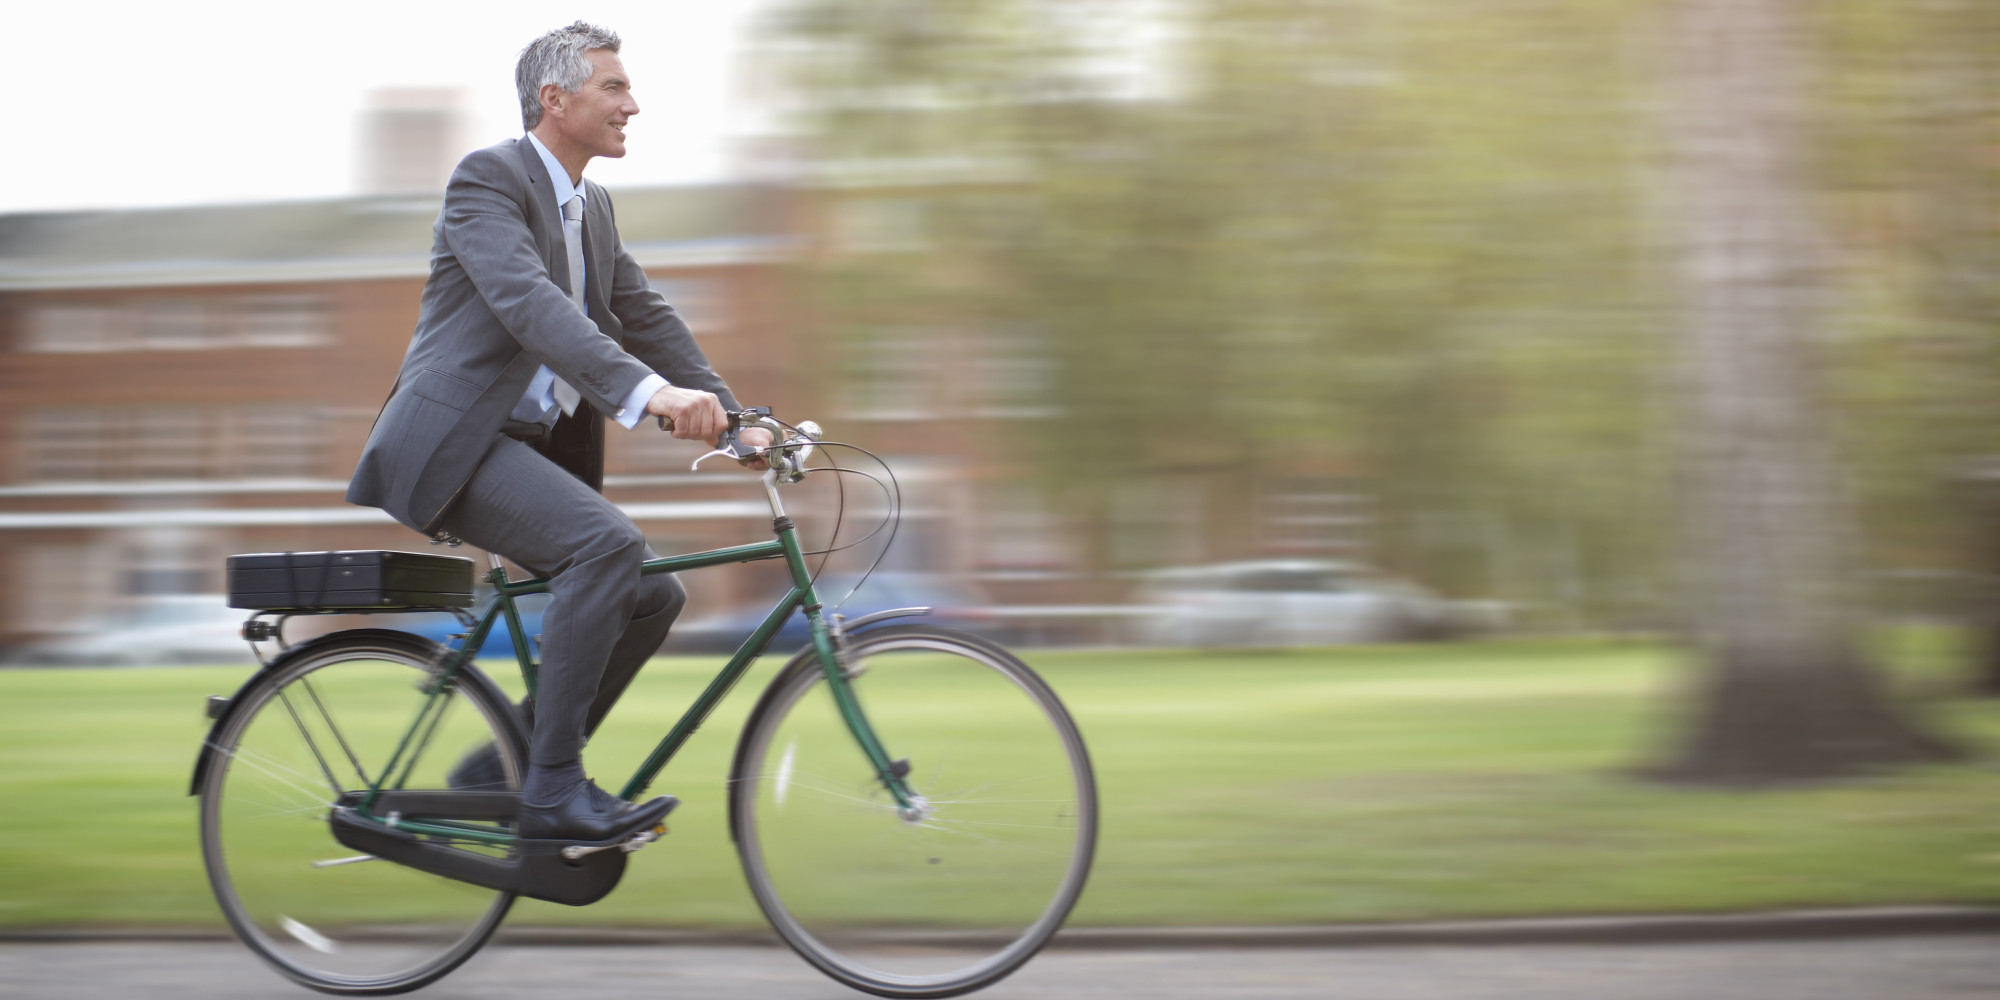 Cycling to work Reduces the Risk to Cancer